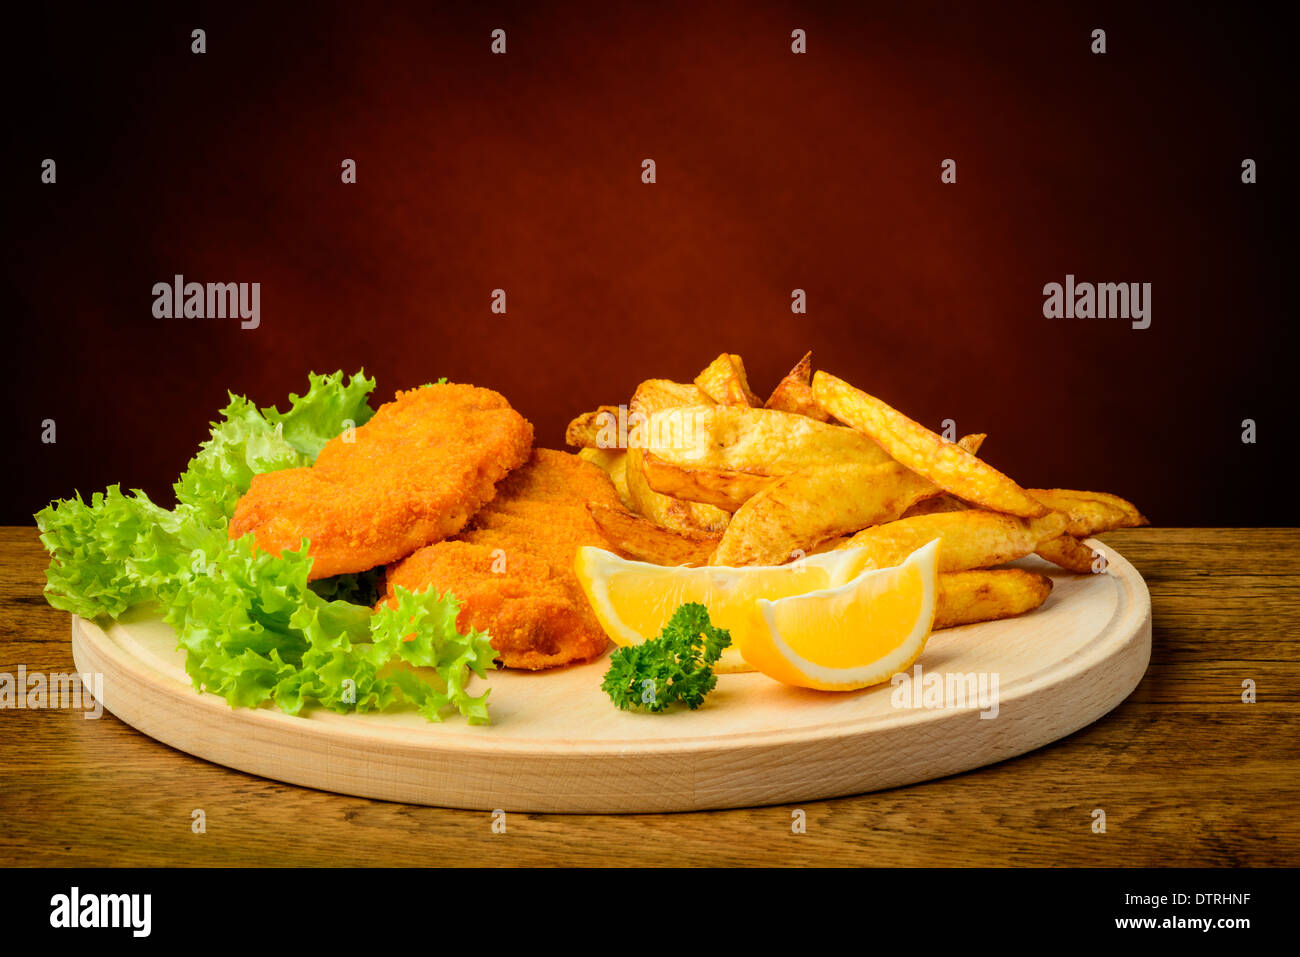 still life with traditional fish and chips, lemons, on a wooden plate - Stock Image